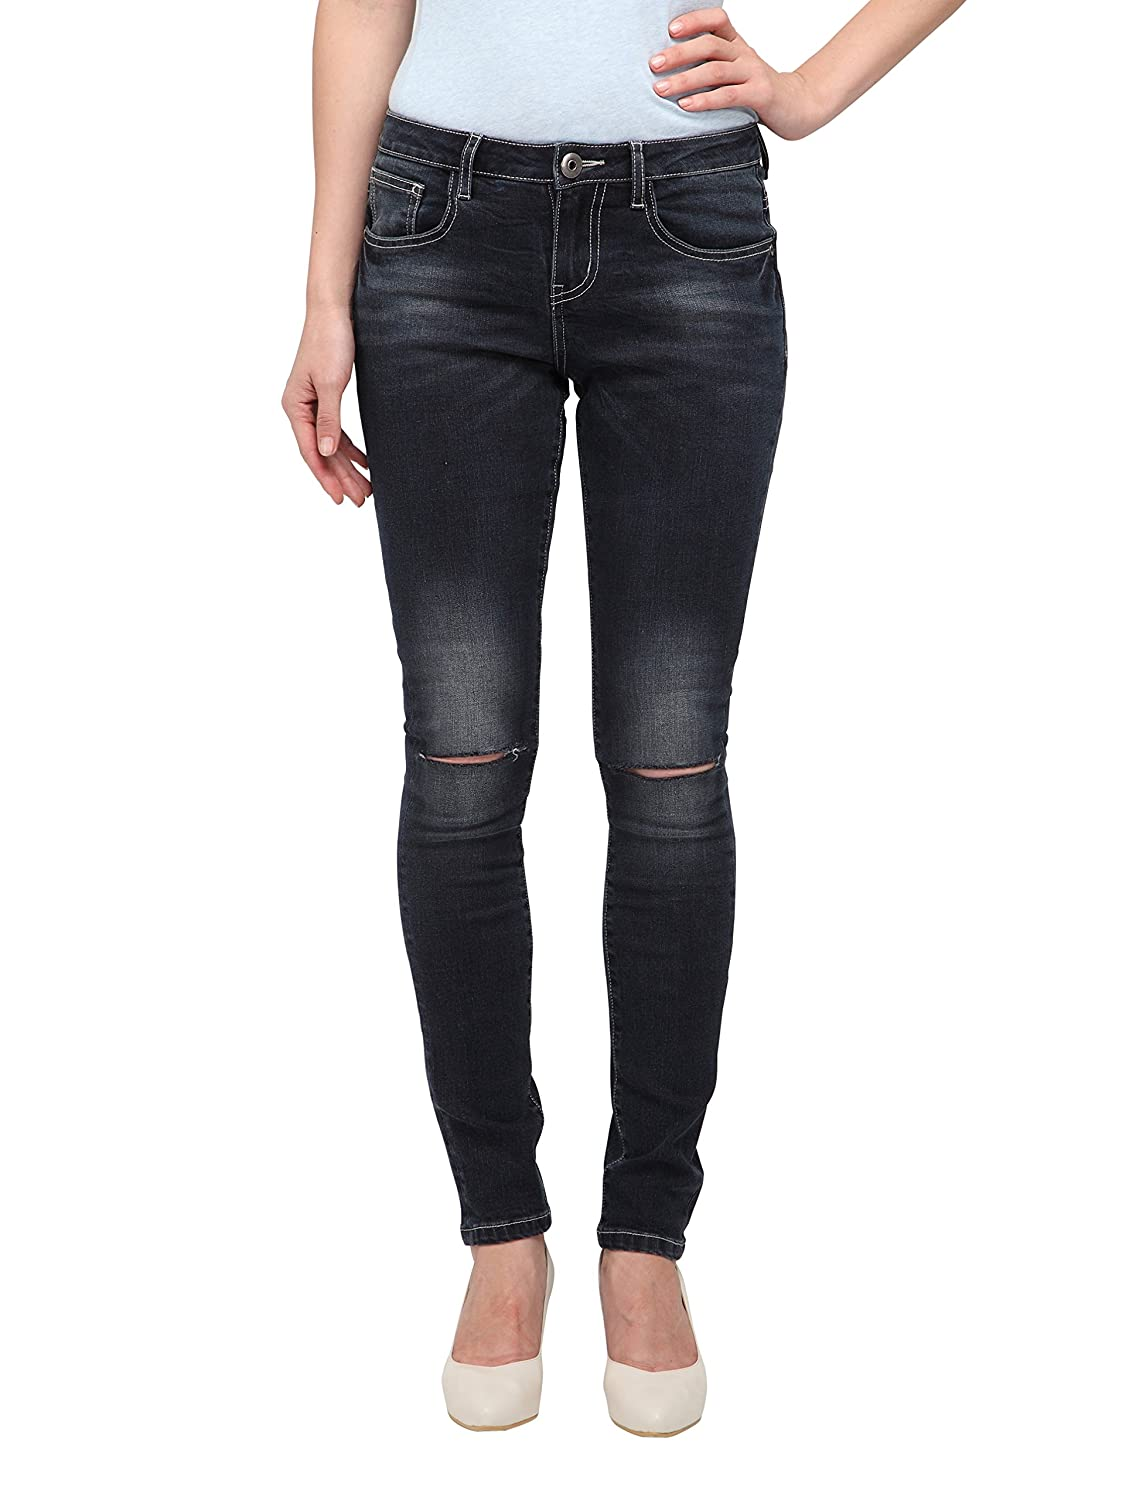 9a509ba28b5 The dark blue distressed skinny jean crafted with high quality skin soft,  smooth and stretchy denim providing supreme comfort. Cut from premium denim  with ...